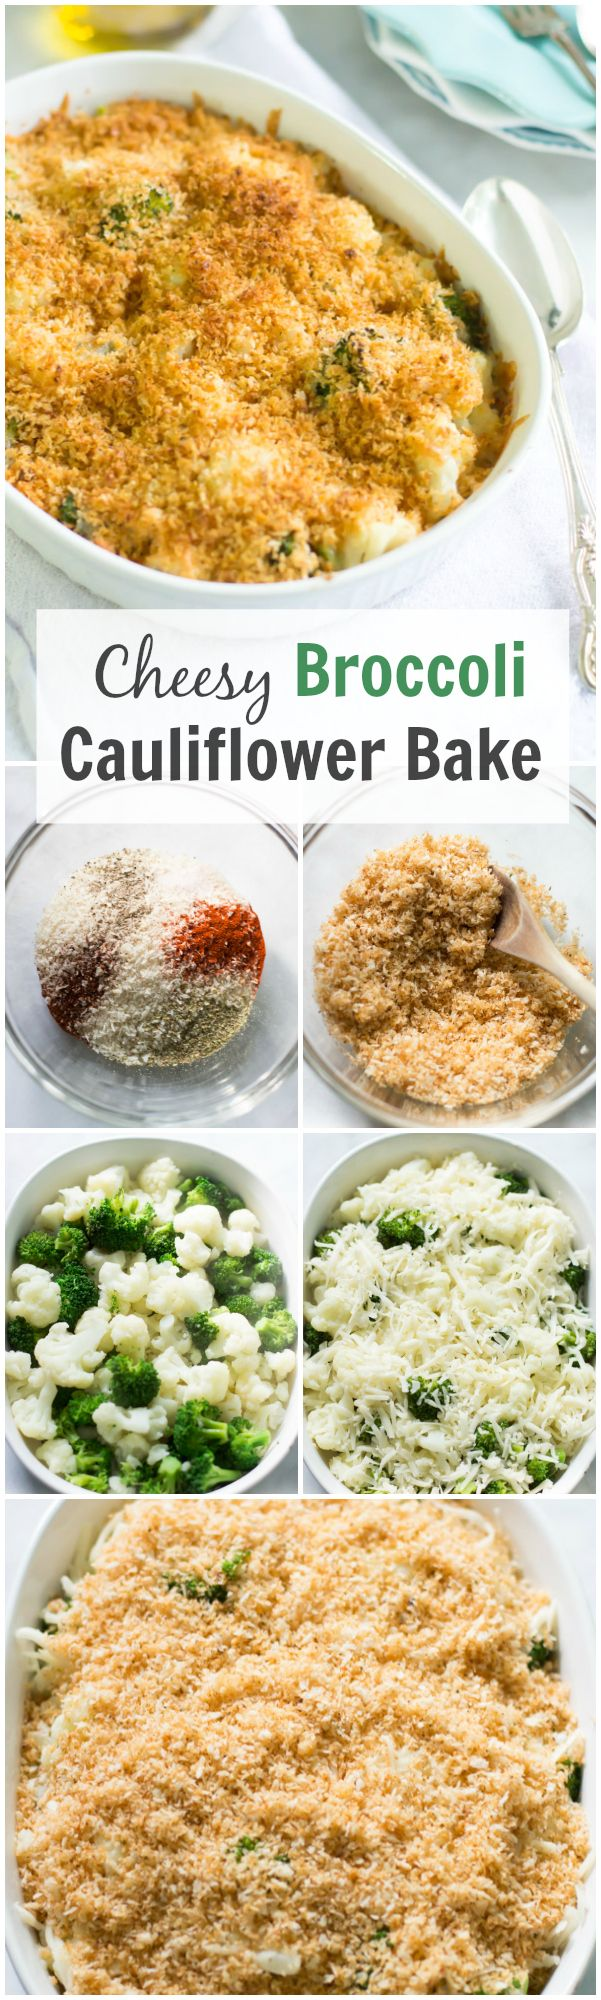 This Cheesy Broccoli-Cauliflower Bake is a delicious and healthy casserole dish that is loaded with veggies, cheesy and panko. It is creamy, golden and super yummy!